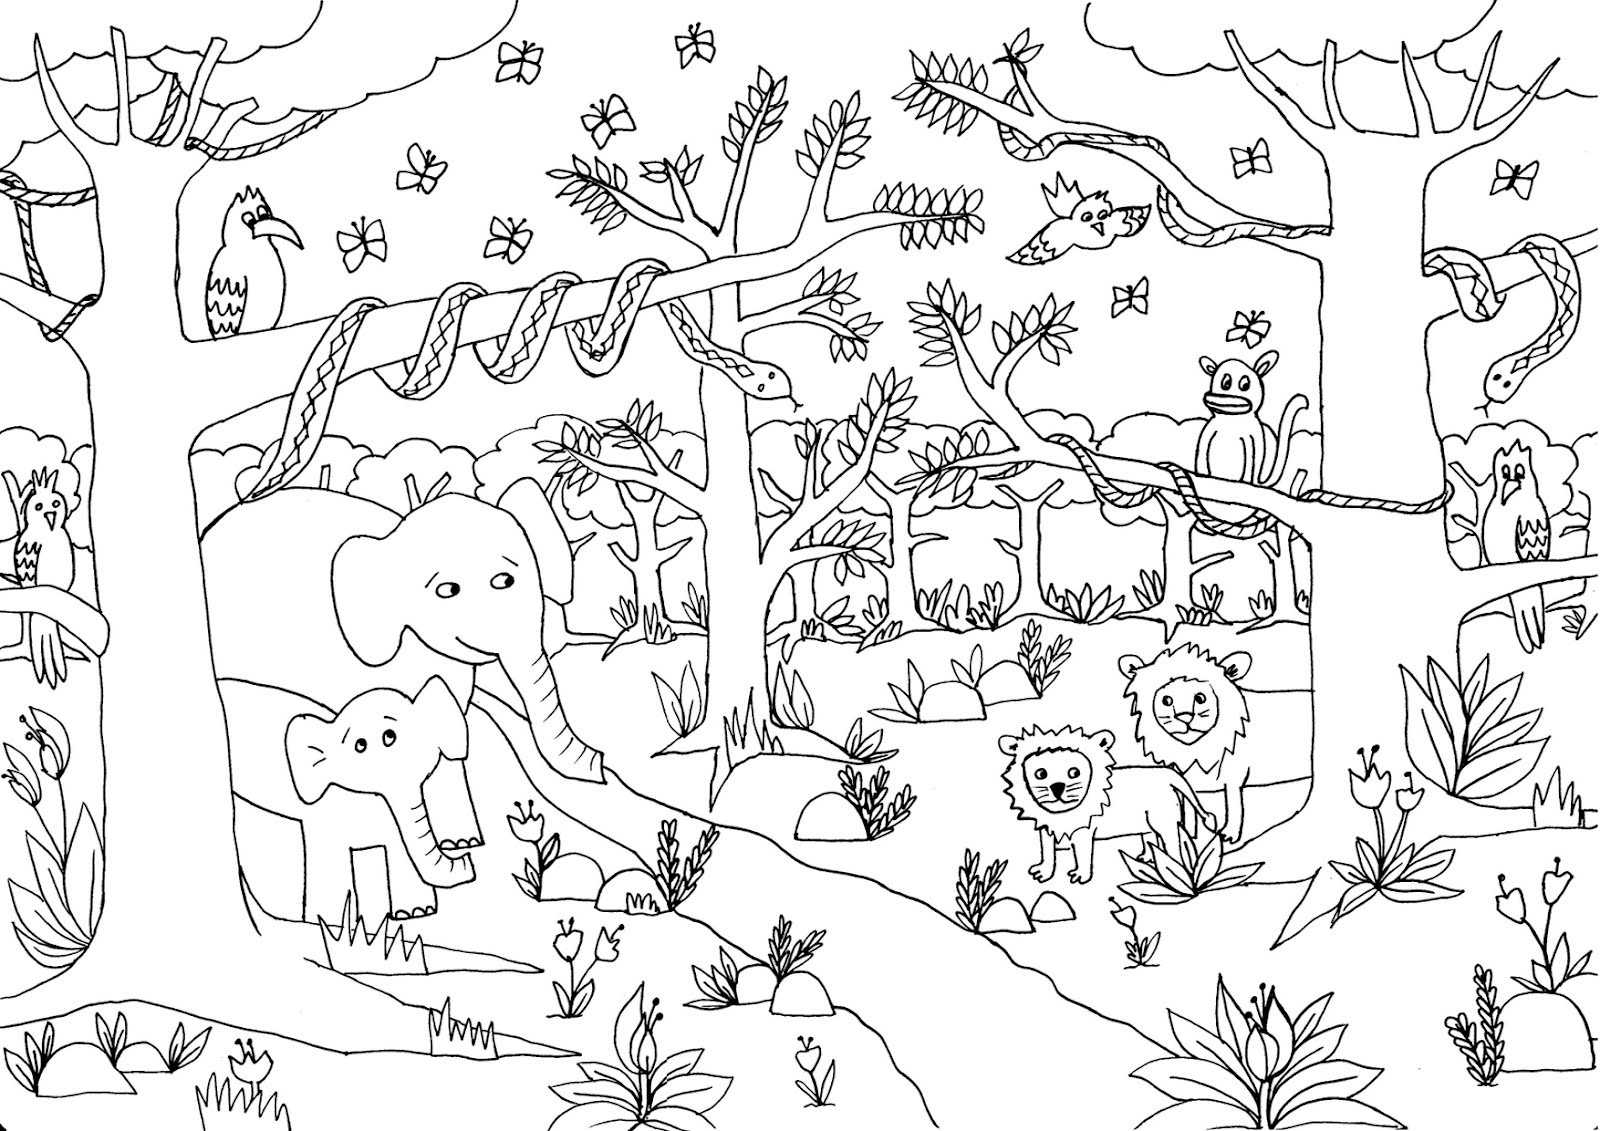 Safari and Jungle Animals Coloring Pages for Kids - Itsy Bitsy Fun | 1131x1600